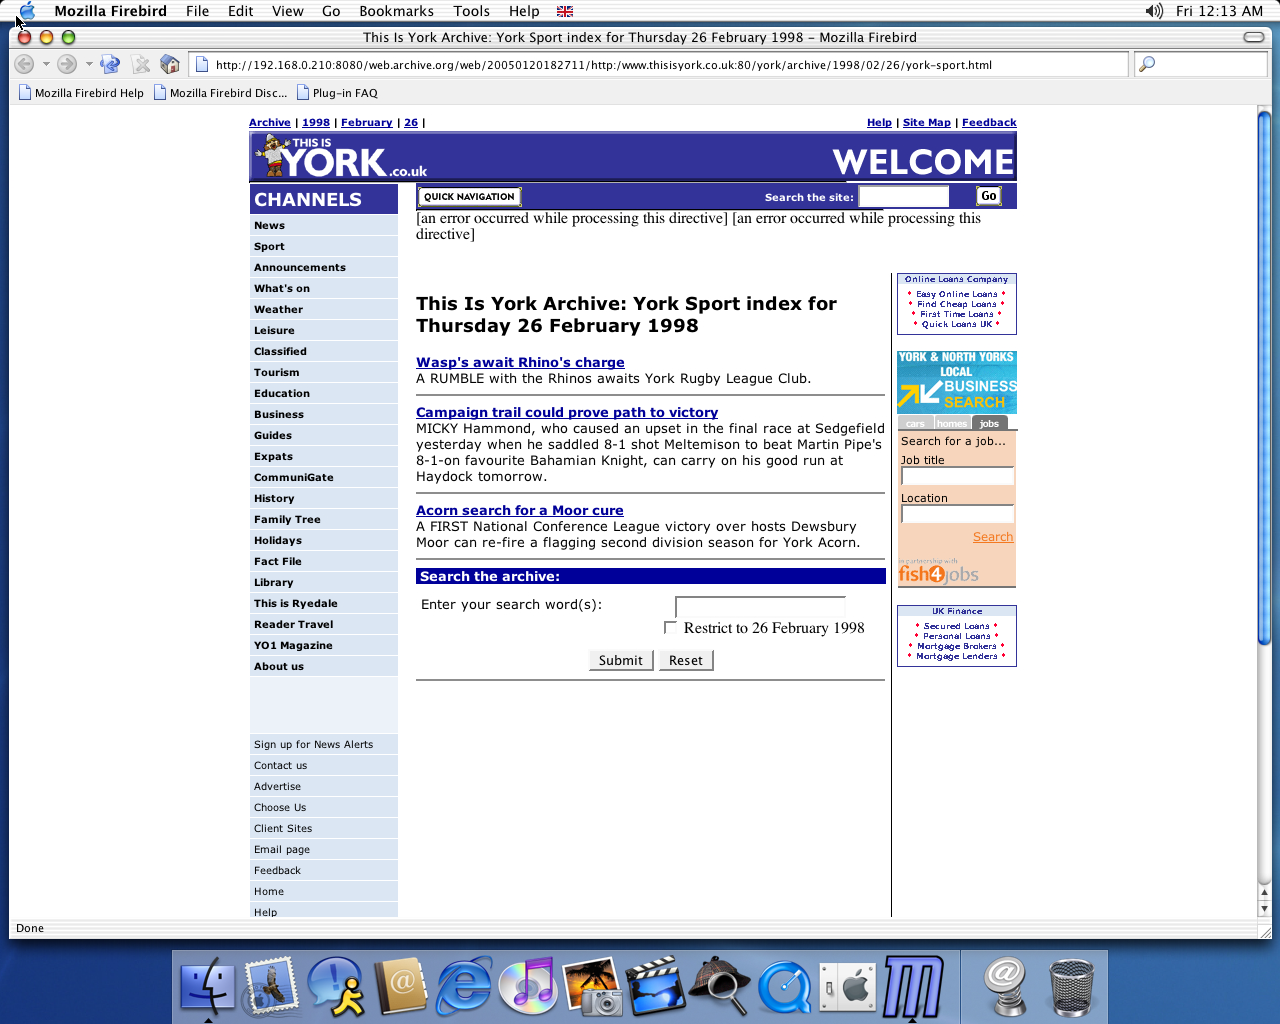 OS X 10.2 PPC with Firebird 0.6 displaying a page from York Press archived at January 20, 2005 at 18:27:11